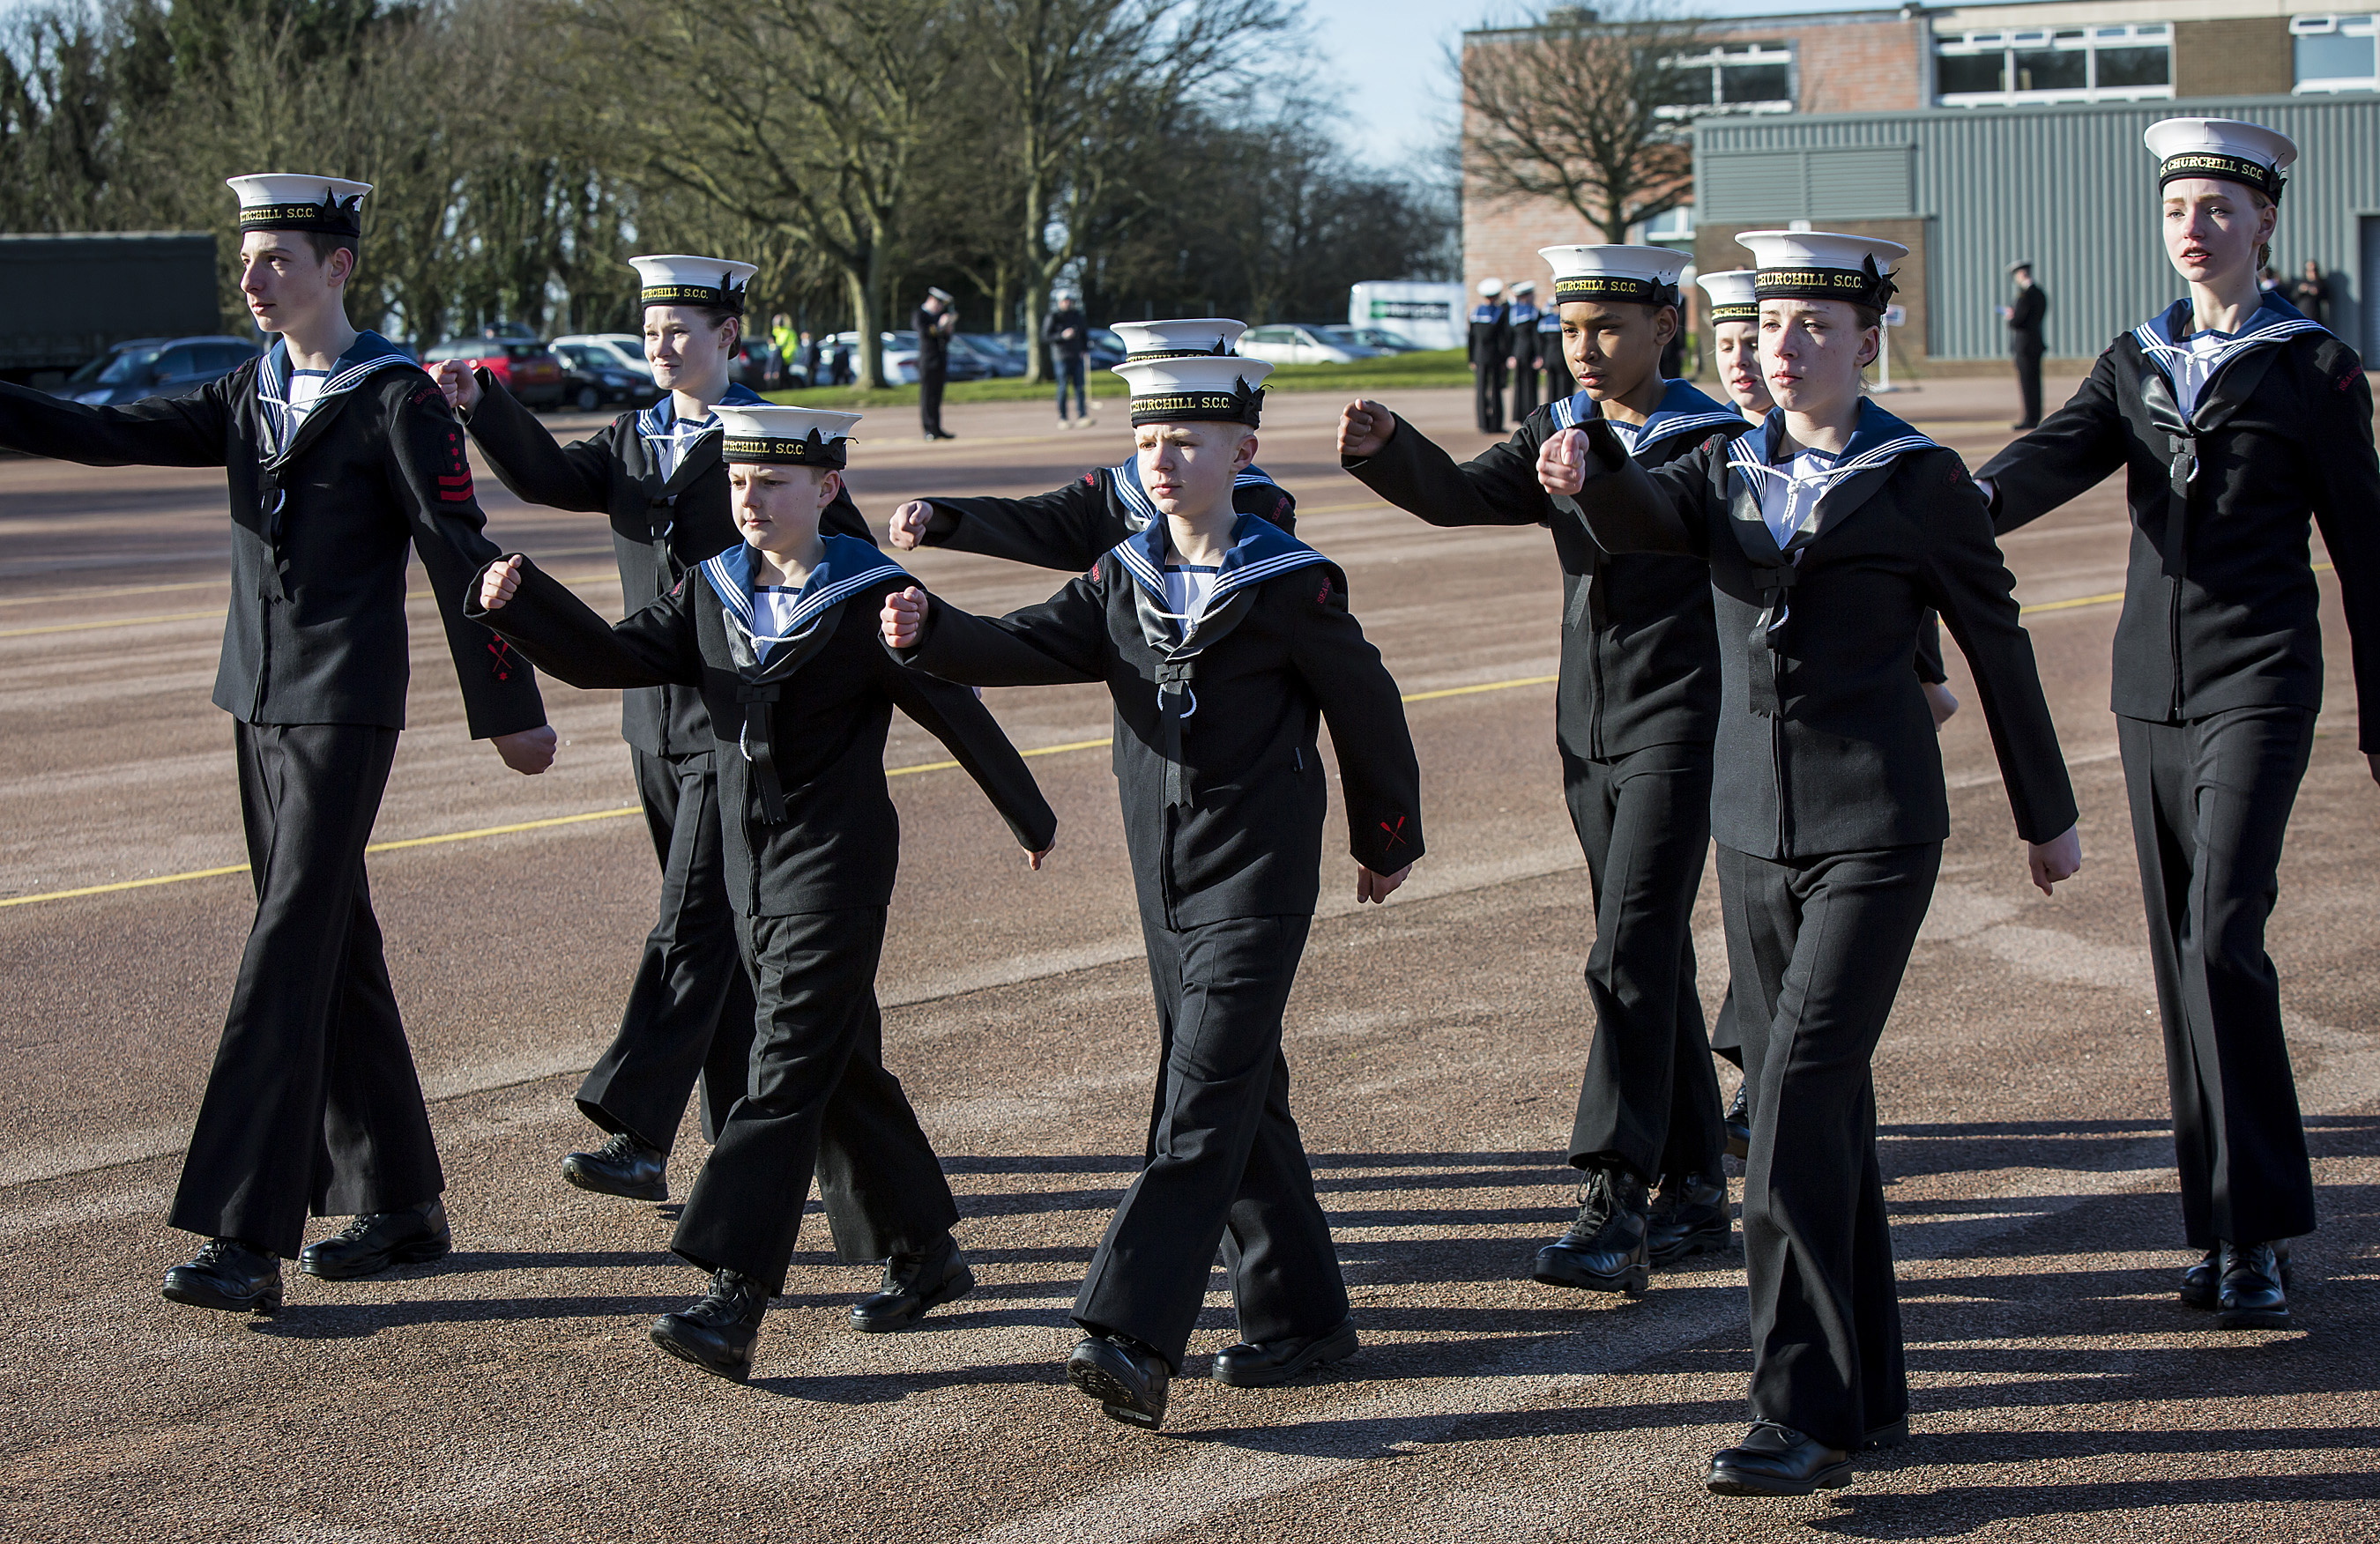 District Drill Competition at Sir John Moore Barracks Folkestone